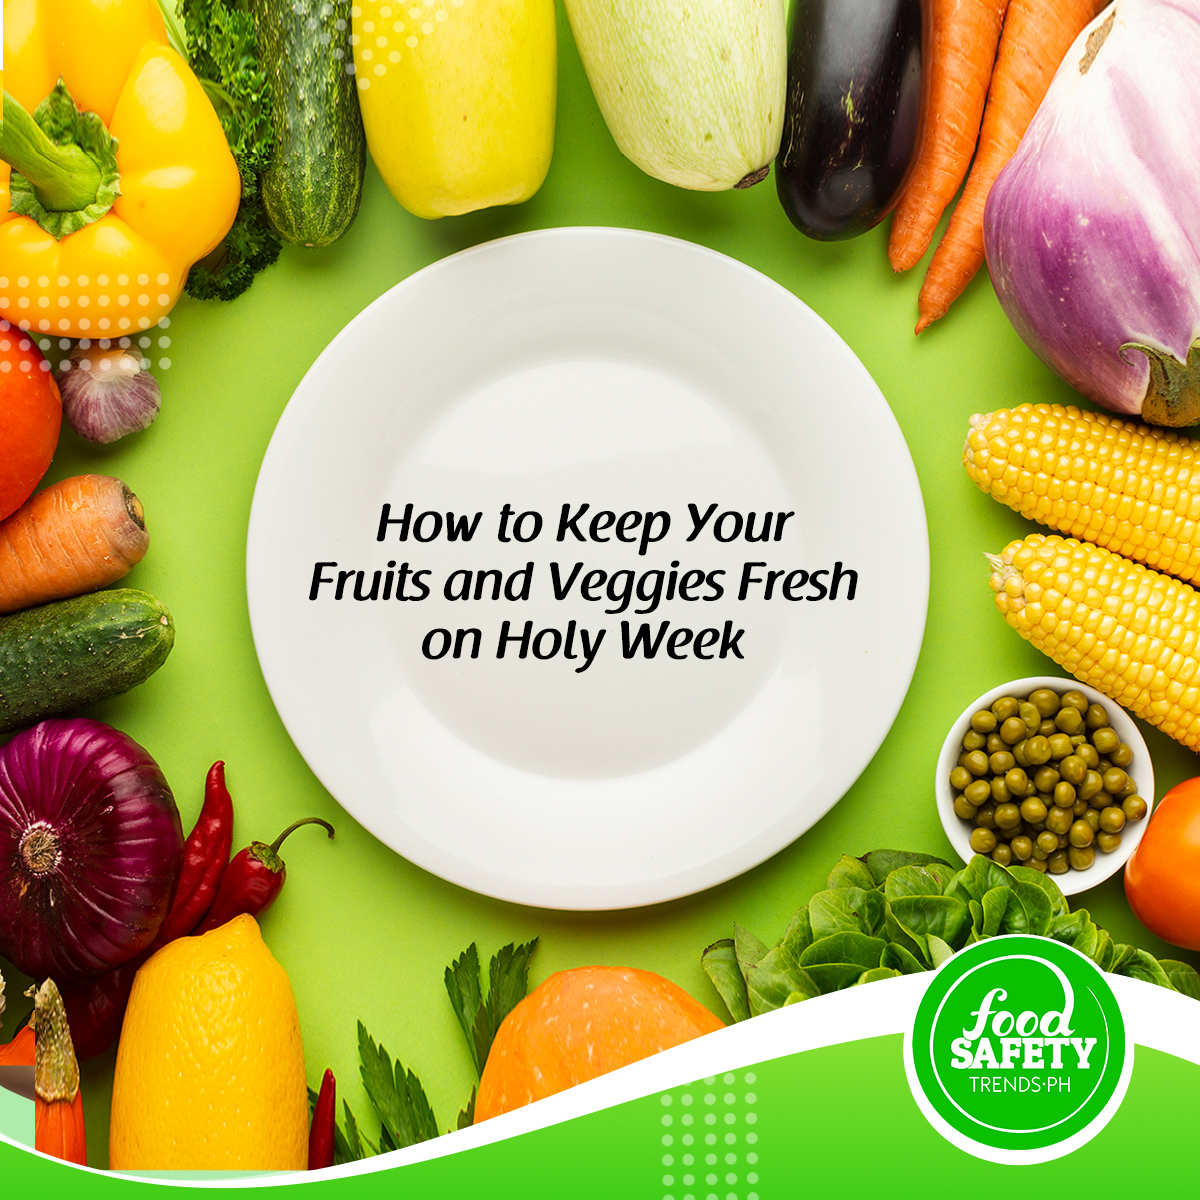 How to Keep your Fruits and Veggies Fresh on Holy Week